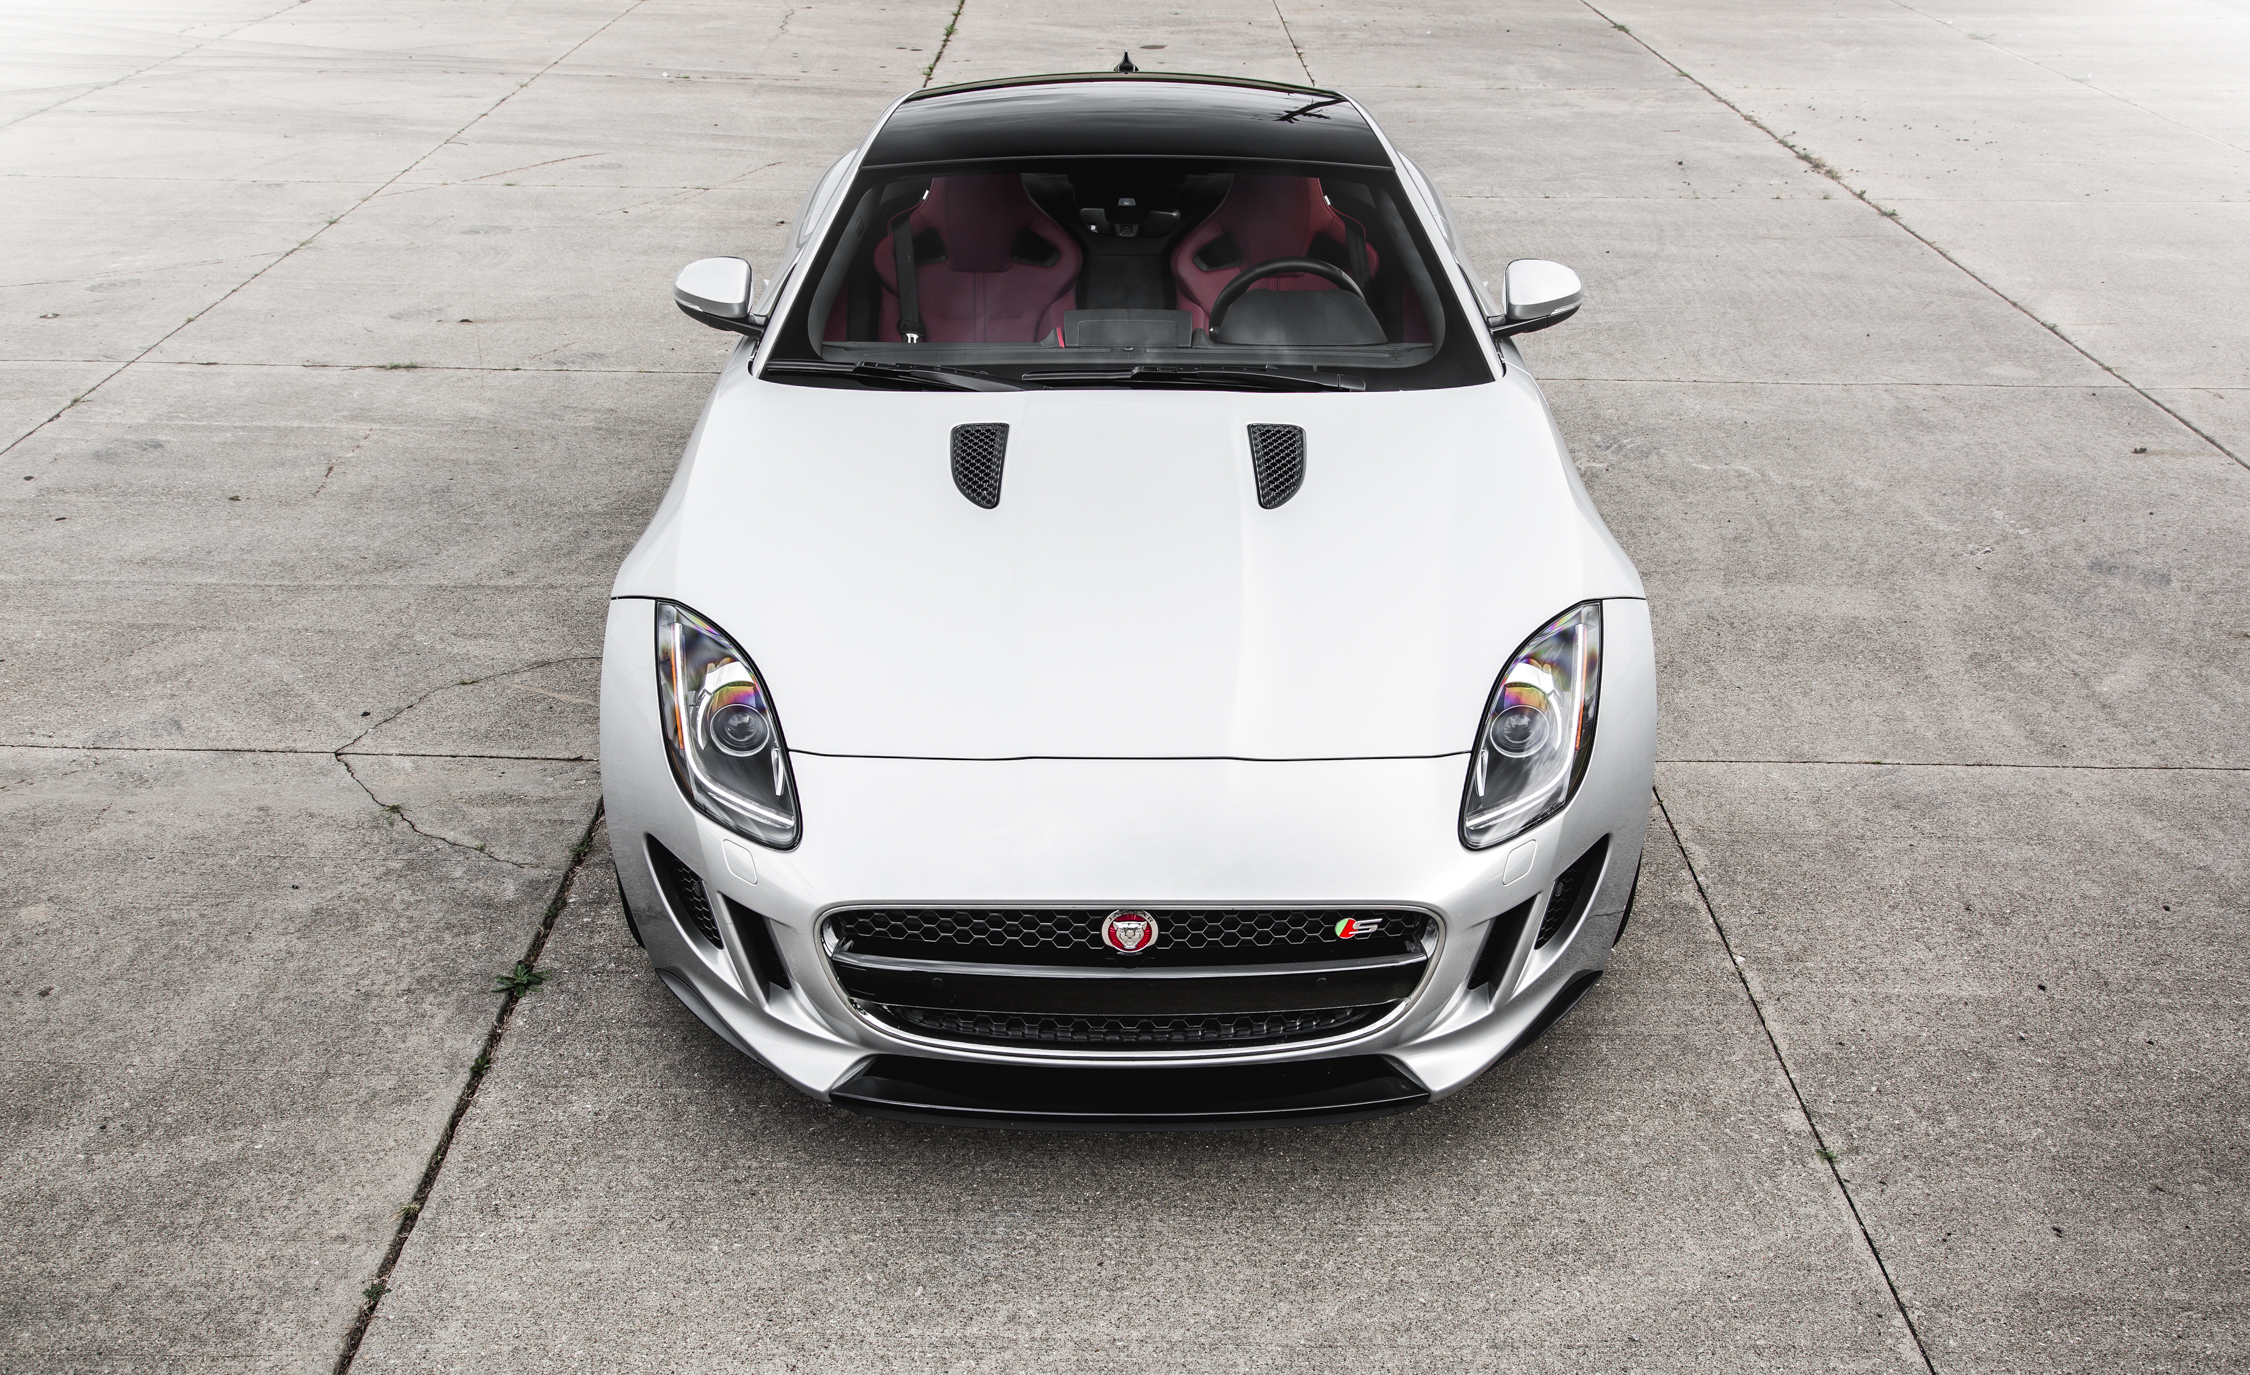 2016 Jaguar F Type V 6 S Coupe (Photo 1 of 23)